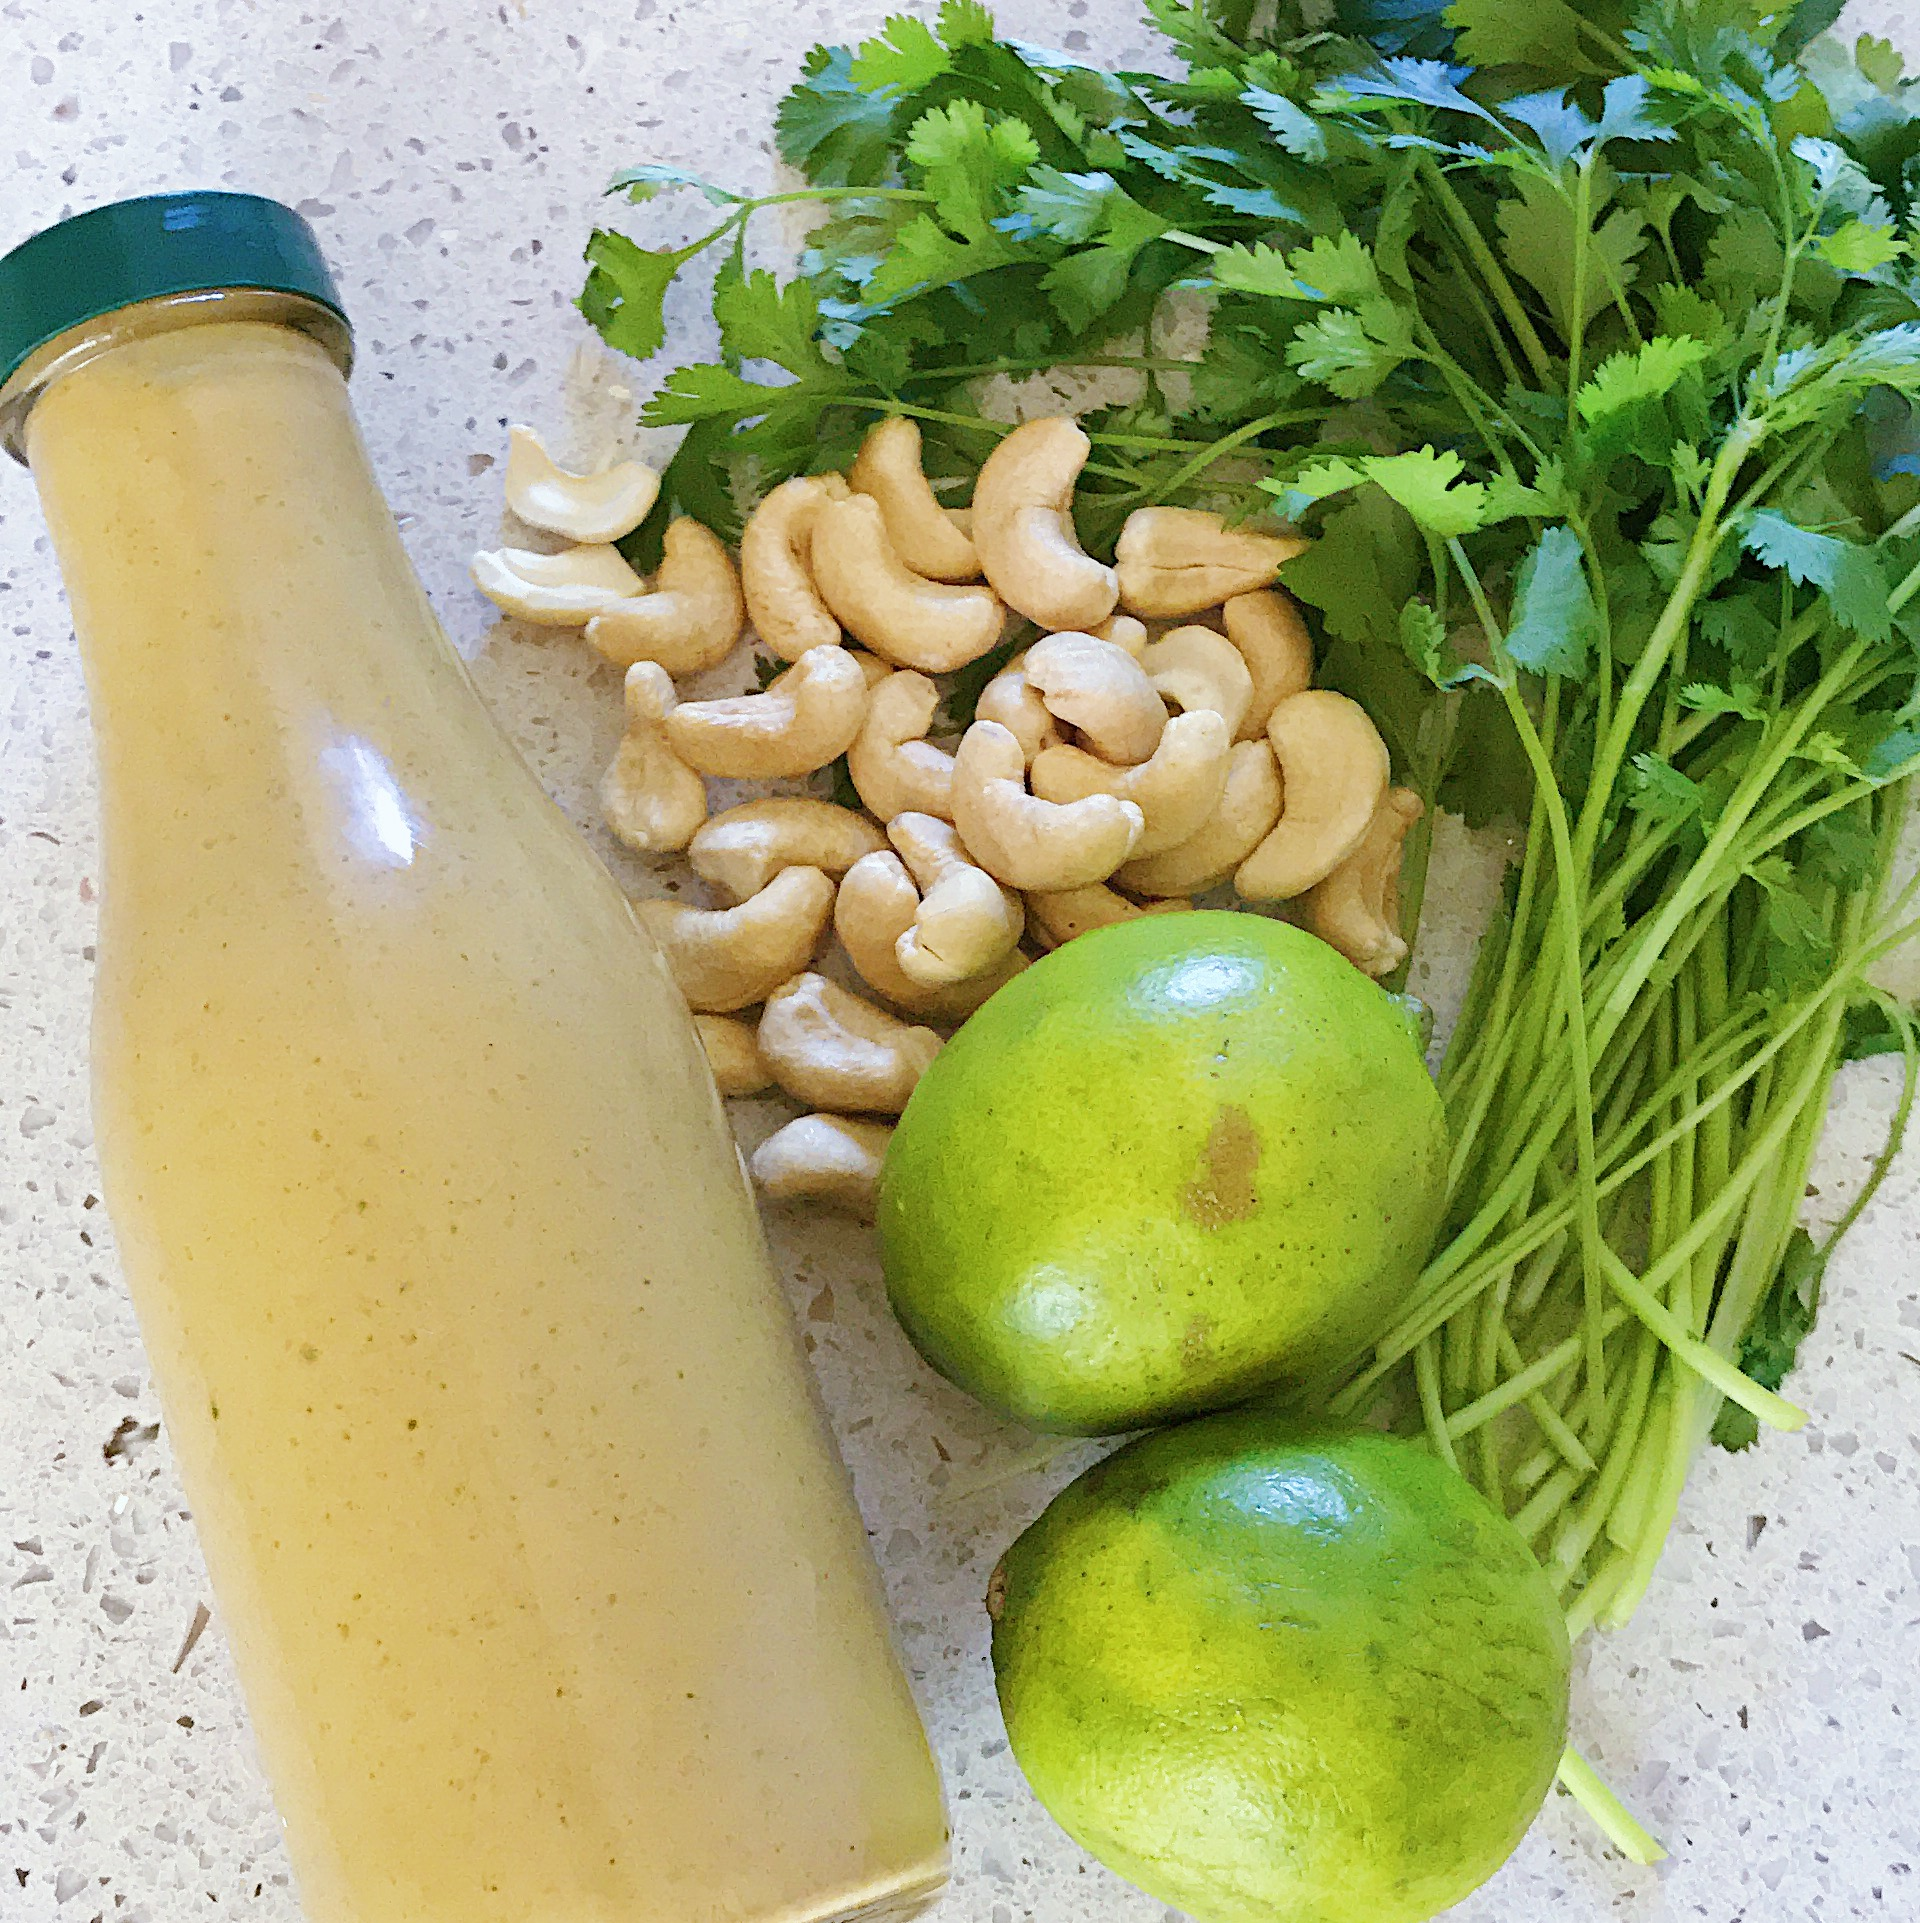 Creamy Cilantro Lime Dressing - INGREDIENTS3/4 cups water1/4 cup lime juice1/4 cup apple cider vinegar1/2 cup soaked cashews (use soaked sunflower seeds for nut-free option)1 cup cilantro, loosely packed2 cloves garlic1 teaspoon chili powder1 teaspoon chili flakes1 teaspoon cumin2 teaspoons sweet smoked paprikapink Himalayan salt to tasteDIRECTIONSBlend all ingredients until smooth. Store in fridge for 1 to 2 weeks.